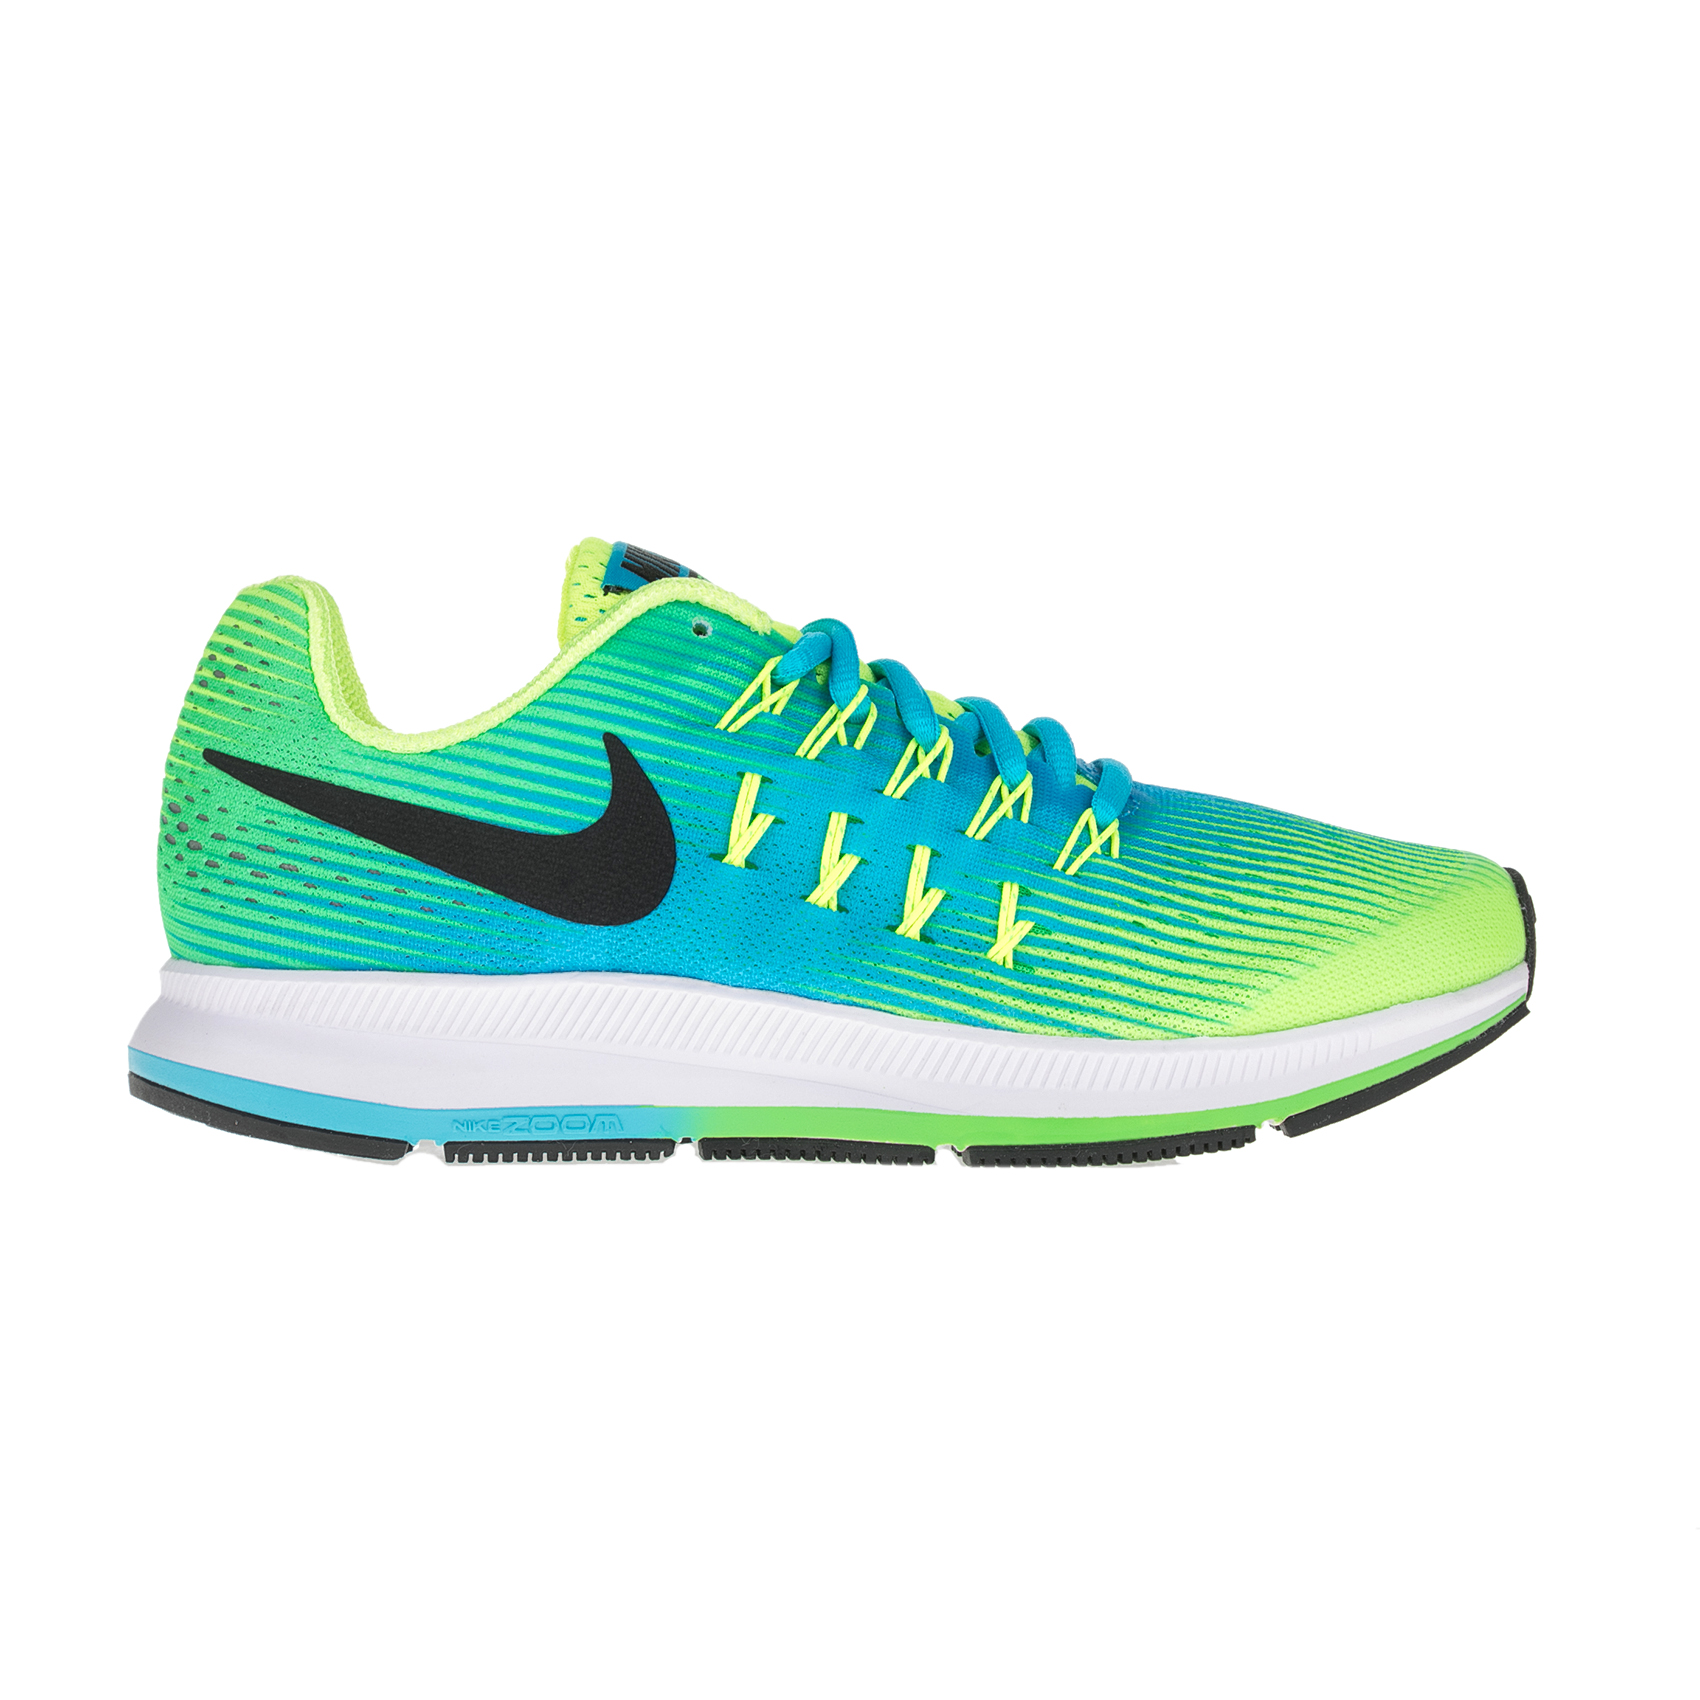 NIKE – Παιδικά αθλητικά παπούτσια NIKE ZOOM PEGASUS 33 (GS) πράσινα – κίτρινα